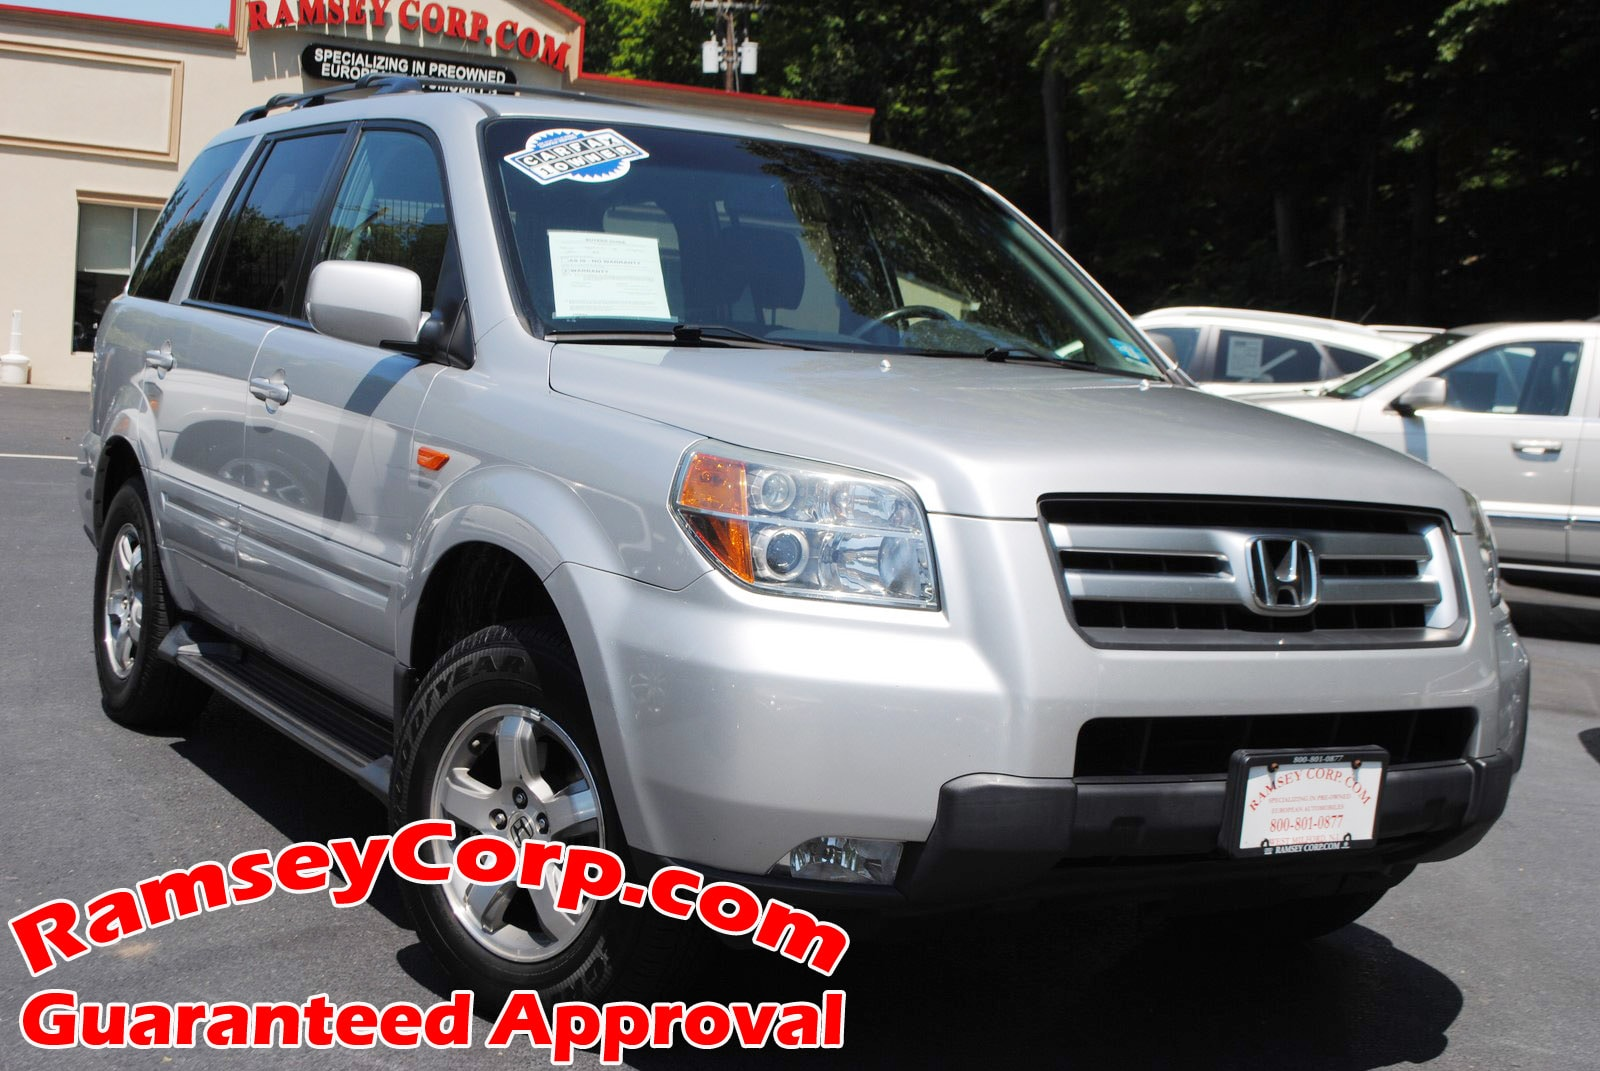 06 Honda Pilot Trailer Wiring Simple Diagram Options Hitch Used 2006 For Sale West Milford Nj